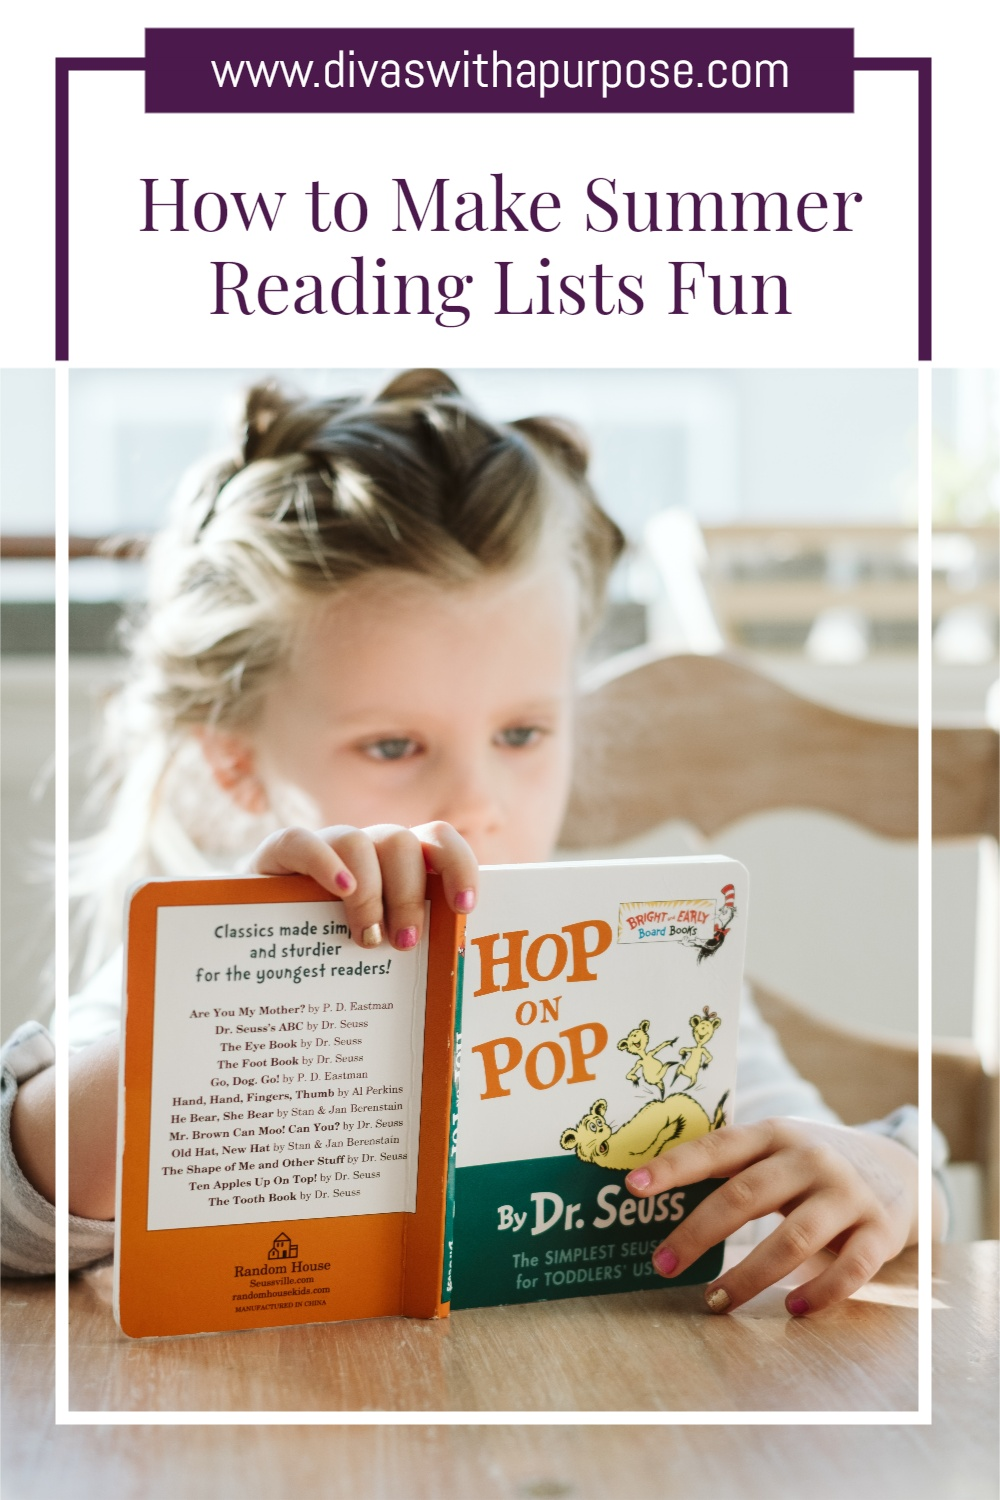 Reading Rocks! Here are some tips to make our children's reading list fun PLUS reading suggestions for kids of all ages. #parentingtips #readingresource